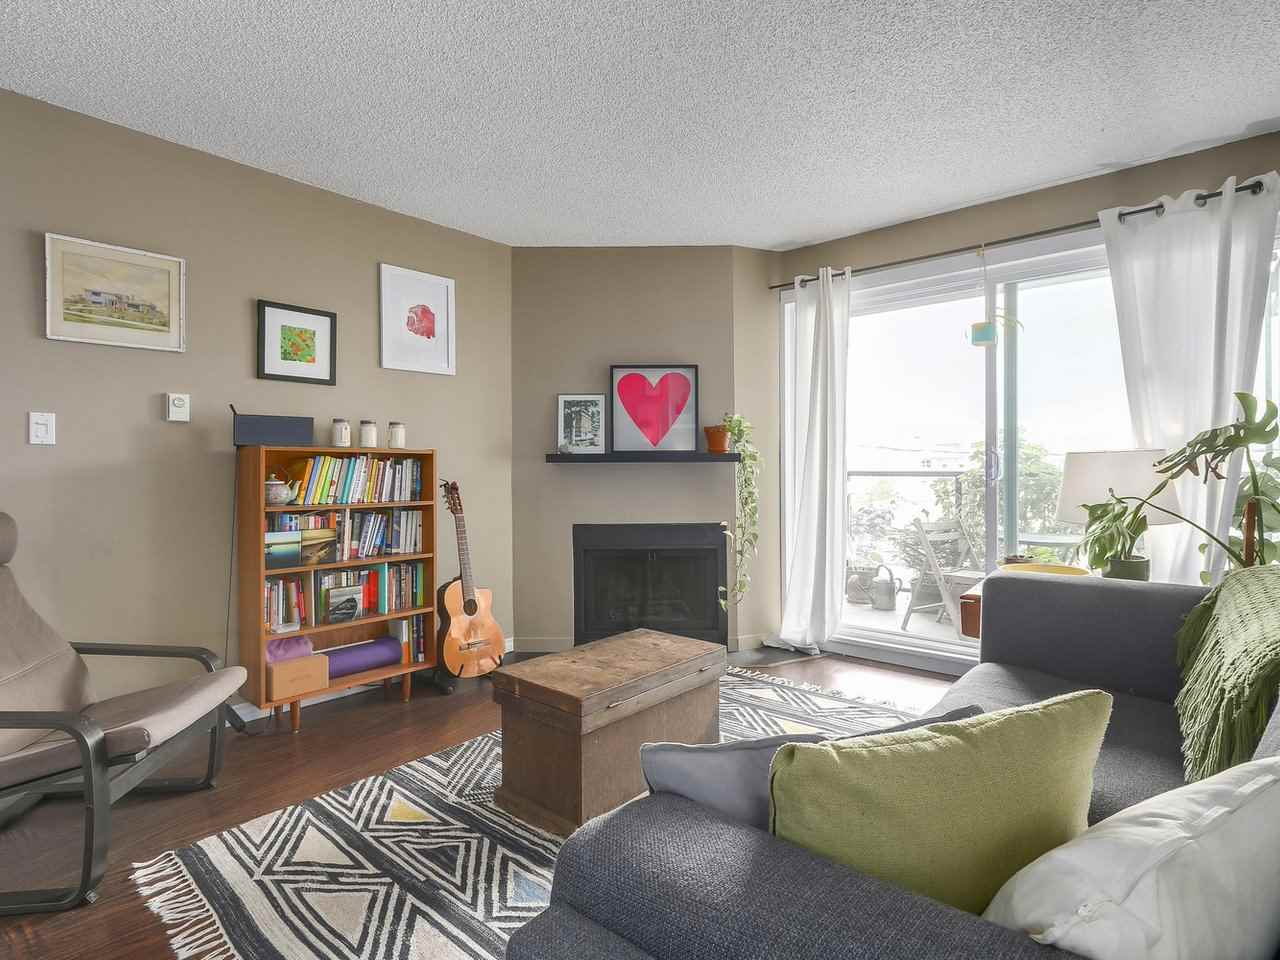 Main Photo: 202 111 W 10TH Avenue in Vancouver: Mount Pleasant VW Condo for sale (Vancouver West)  : MLS® # R2208429